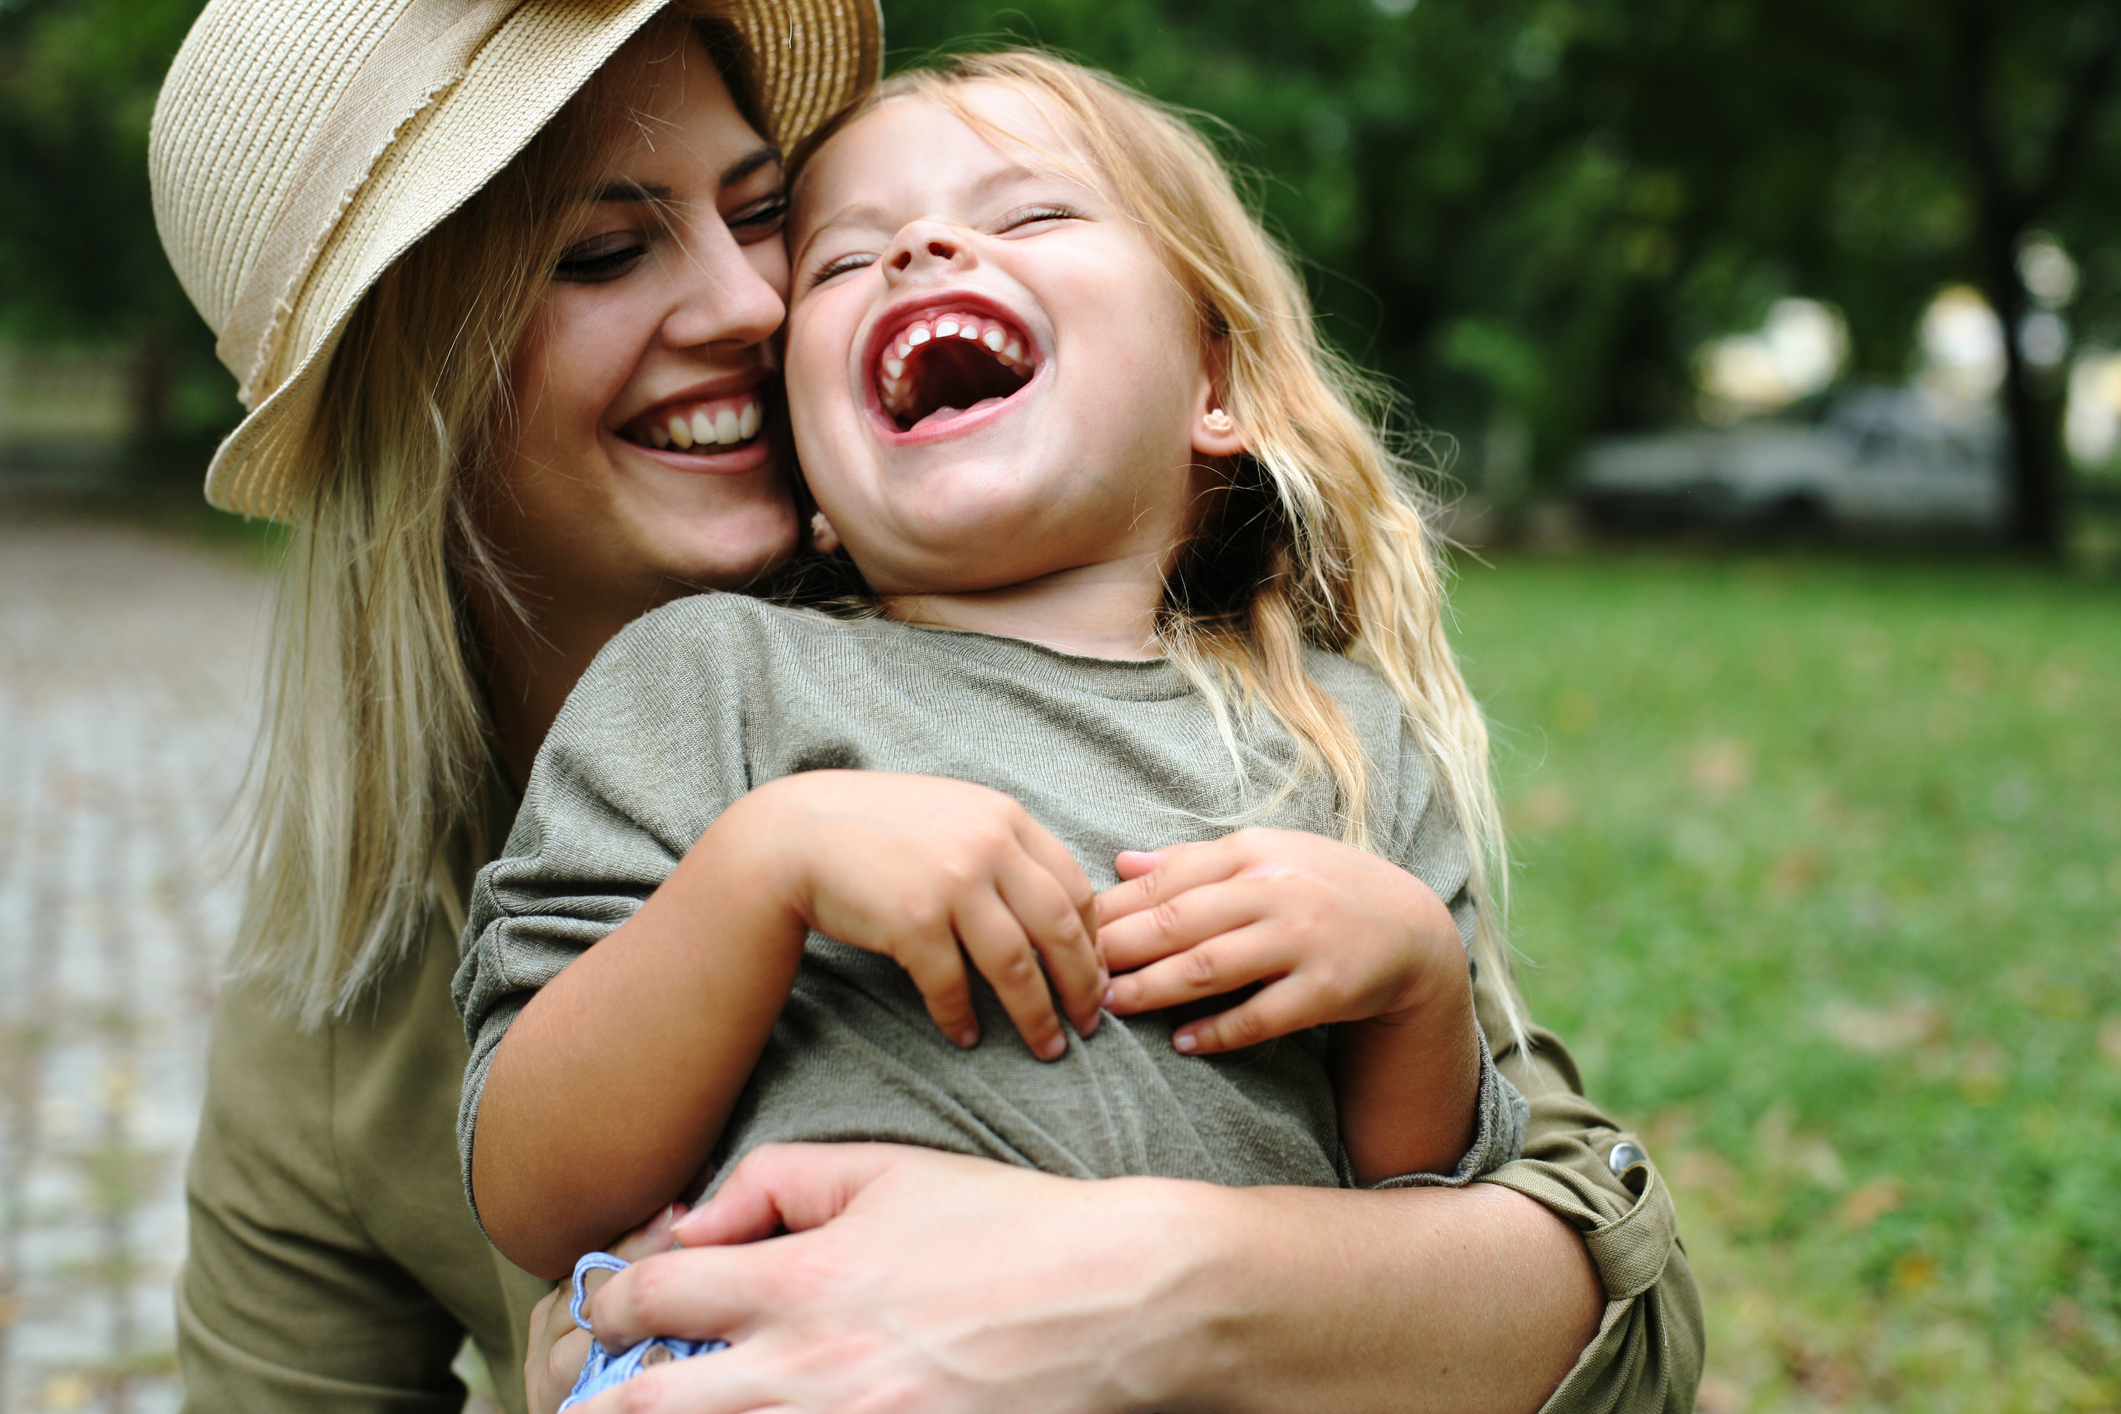 Cheerful mother with her daughter outdoor.